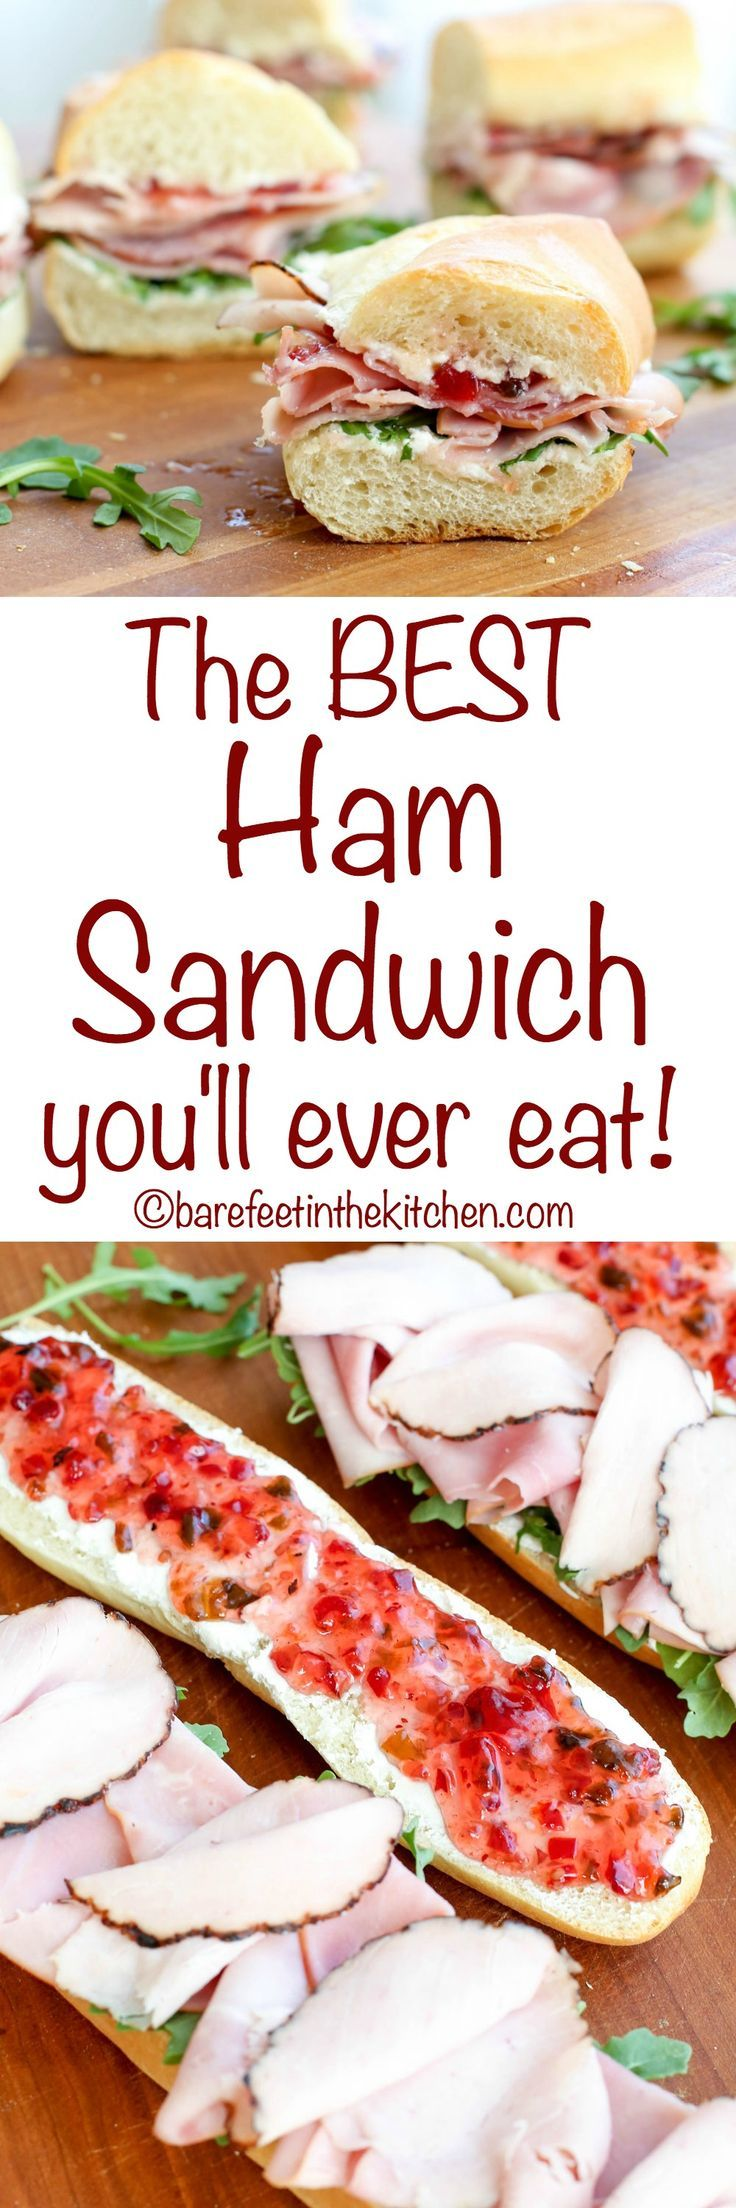 The BEST Ham Sandwich you will ever eat is sweet, spicy, and a little bit of everything! get the recipe at barefeetinthekitchen.com